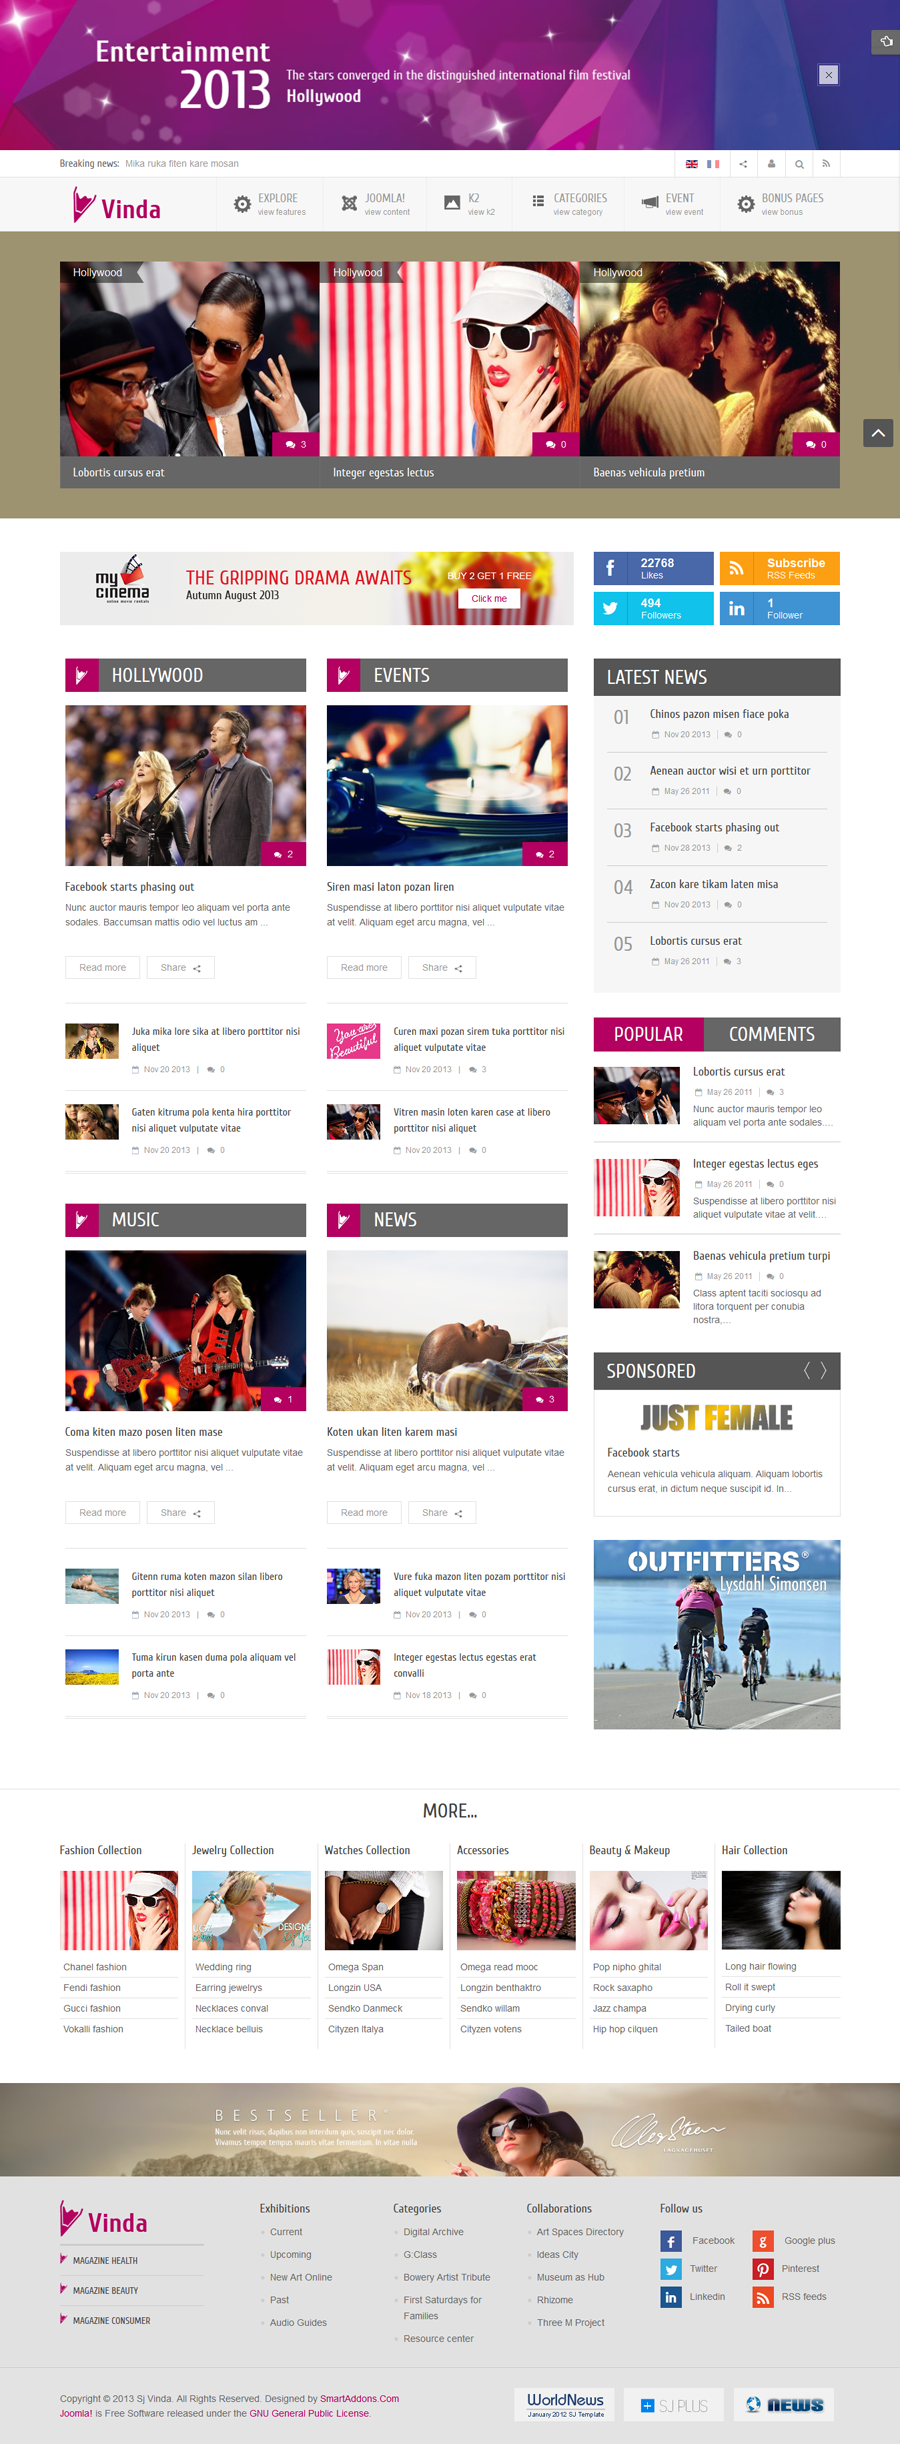 SJ Vinda - Free Joomla Entertainment Template - 04homepage4.png